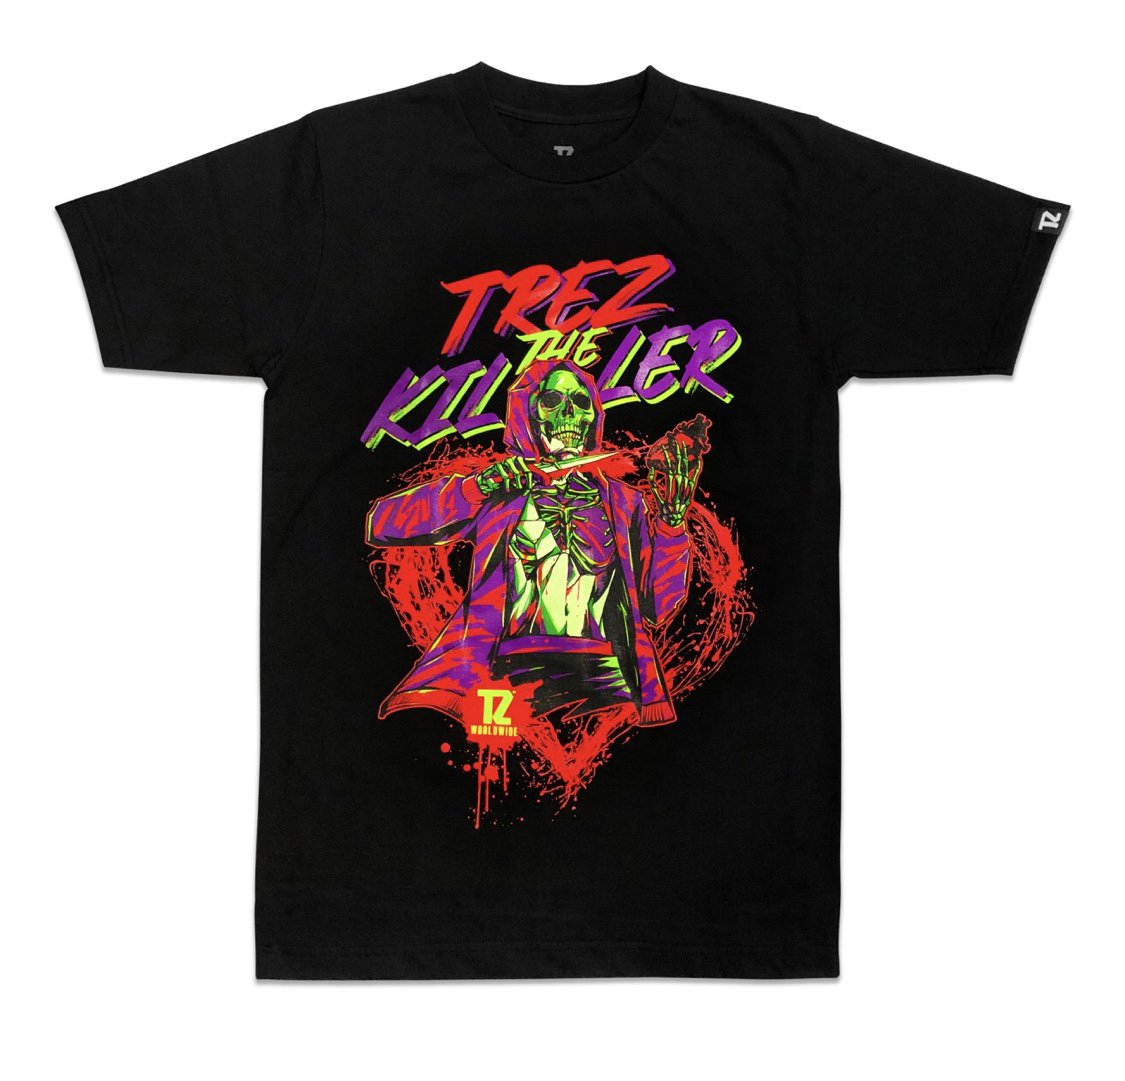 Trez The Killer